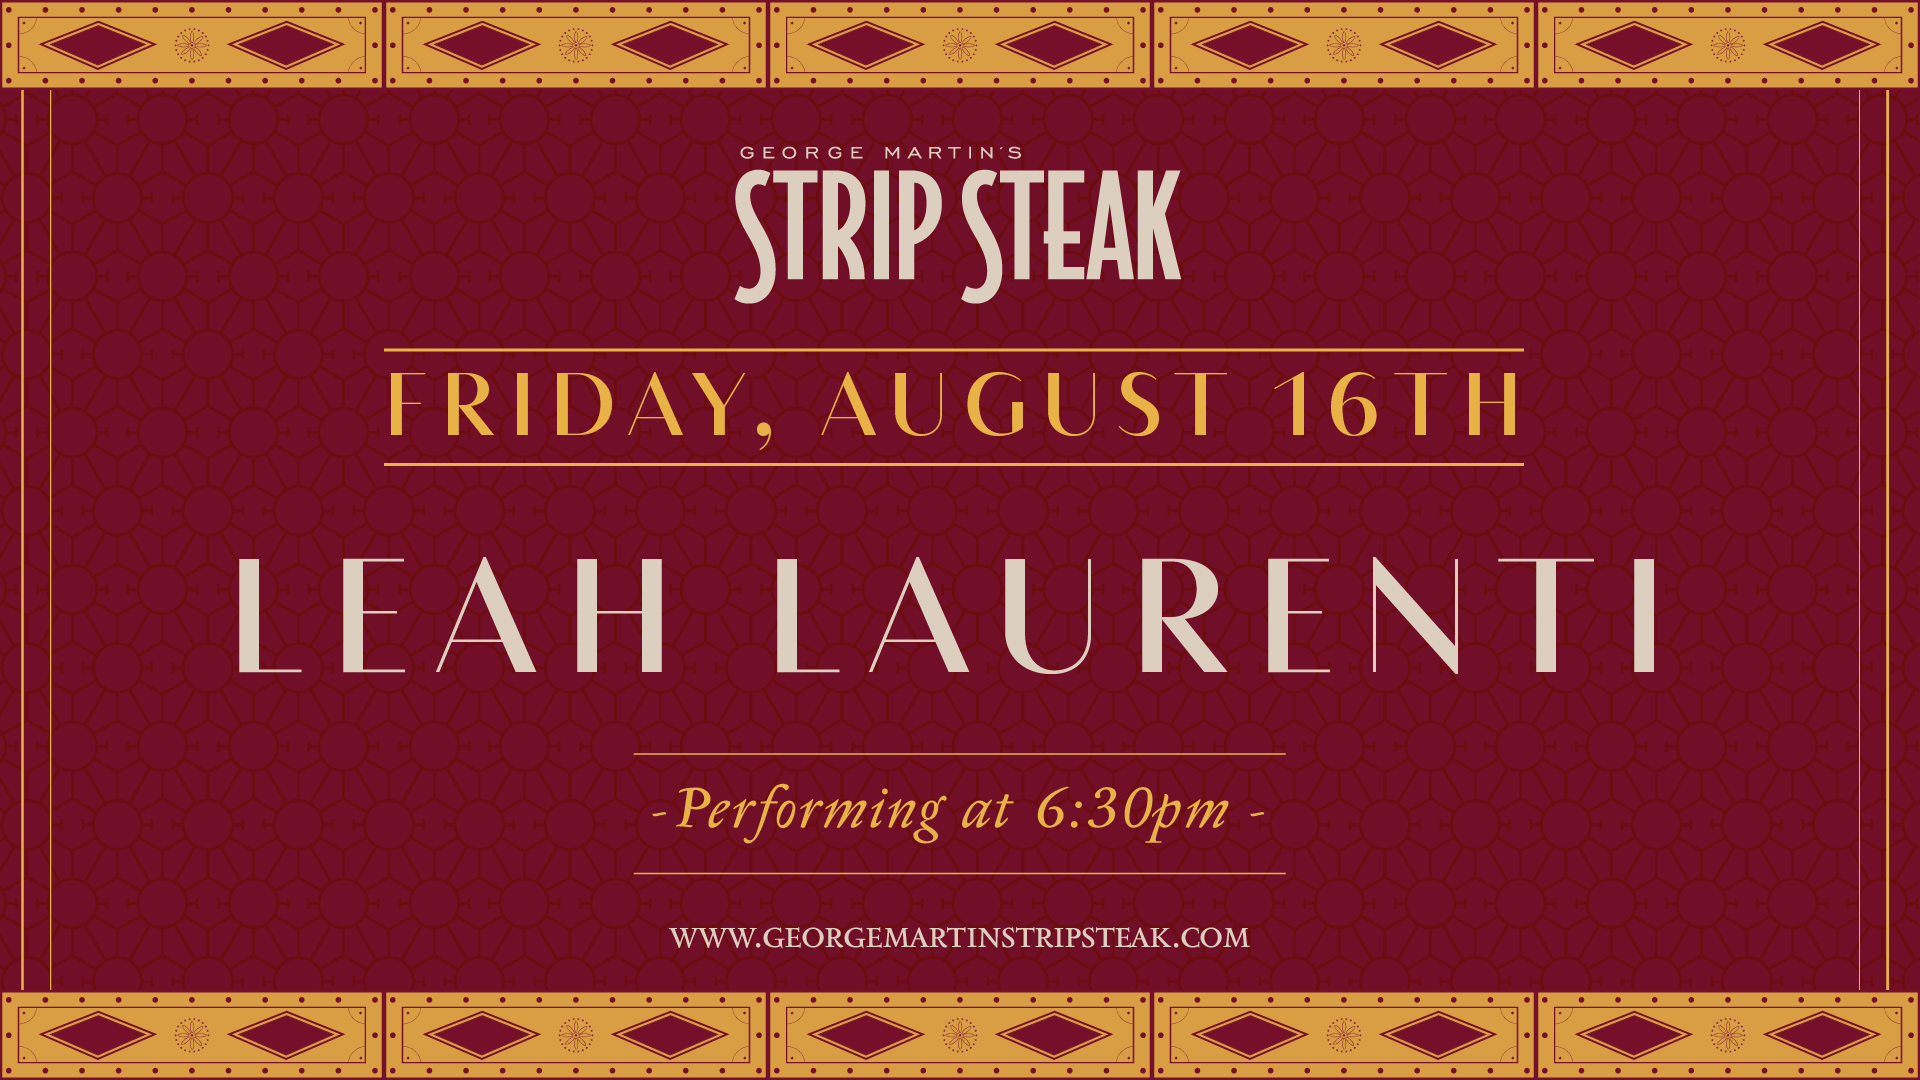 Flyer for live music with Leah Laurenti on August 16th at 6:30pm